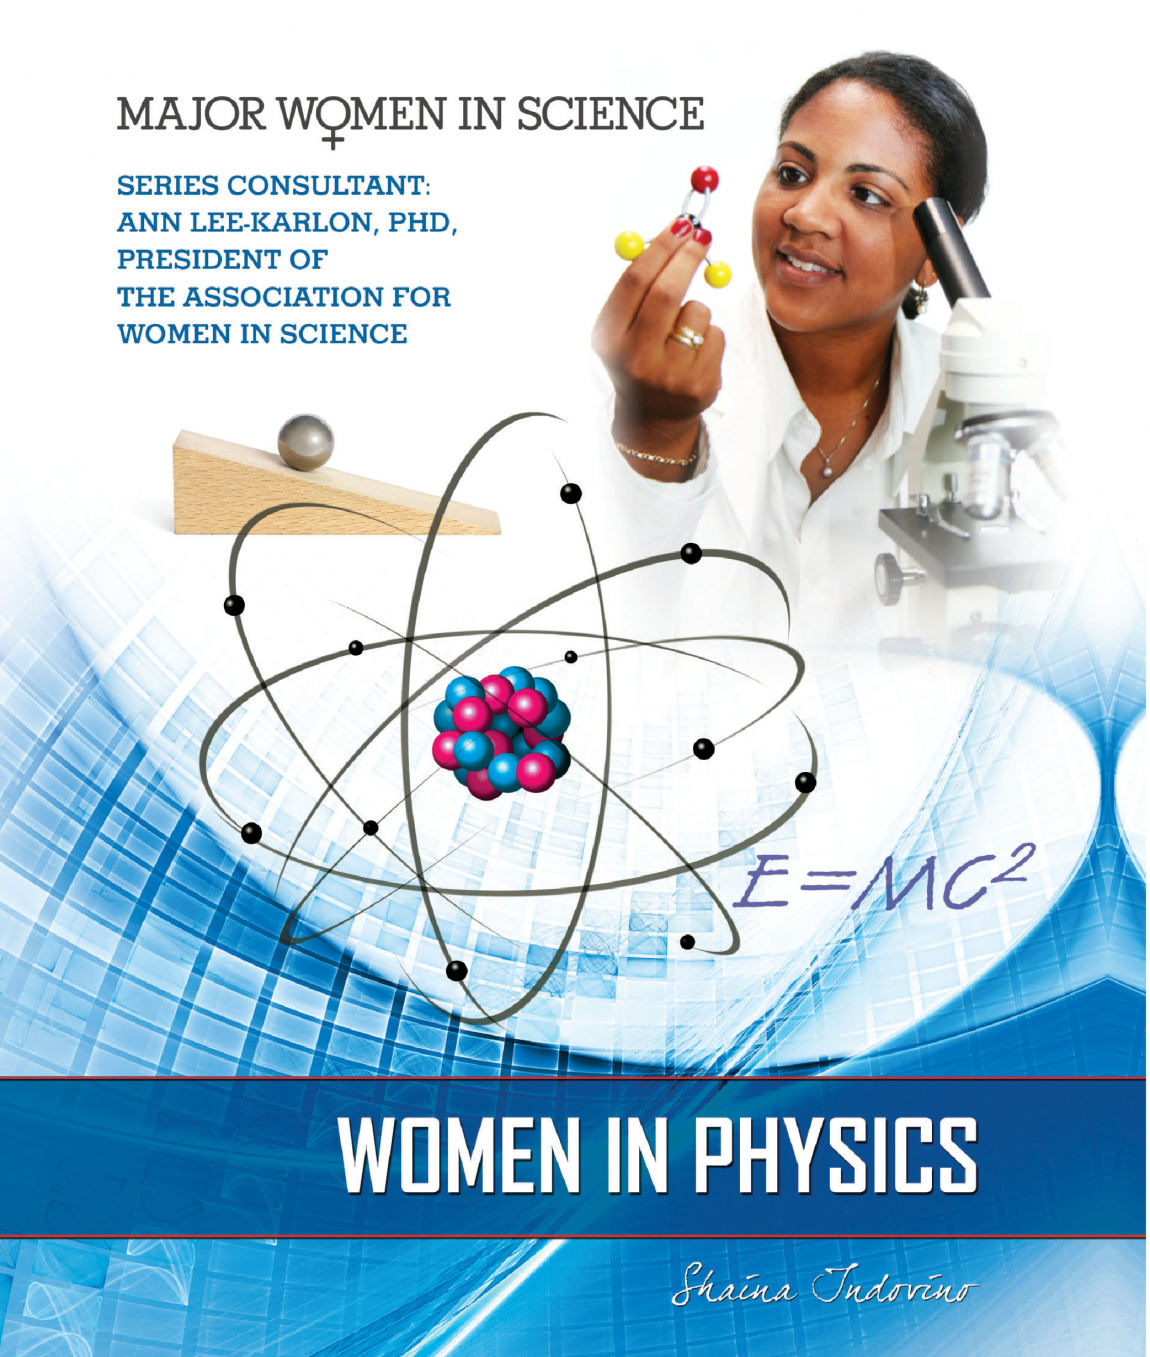 women-in-physics-01.png